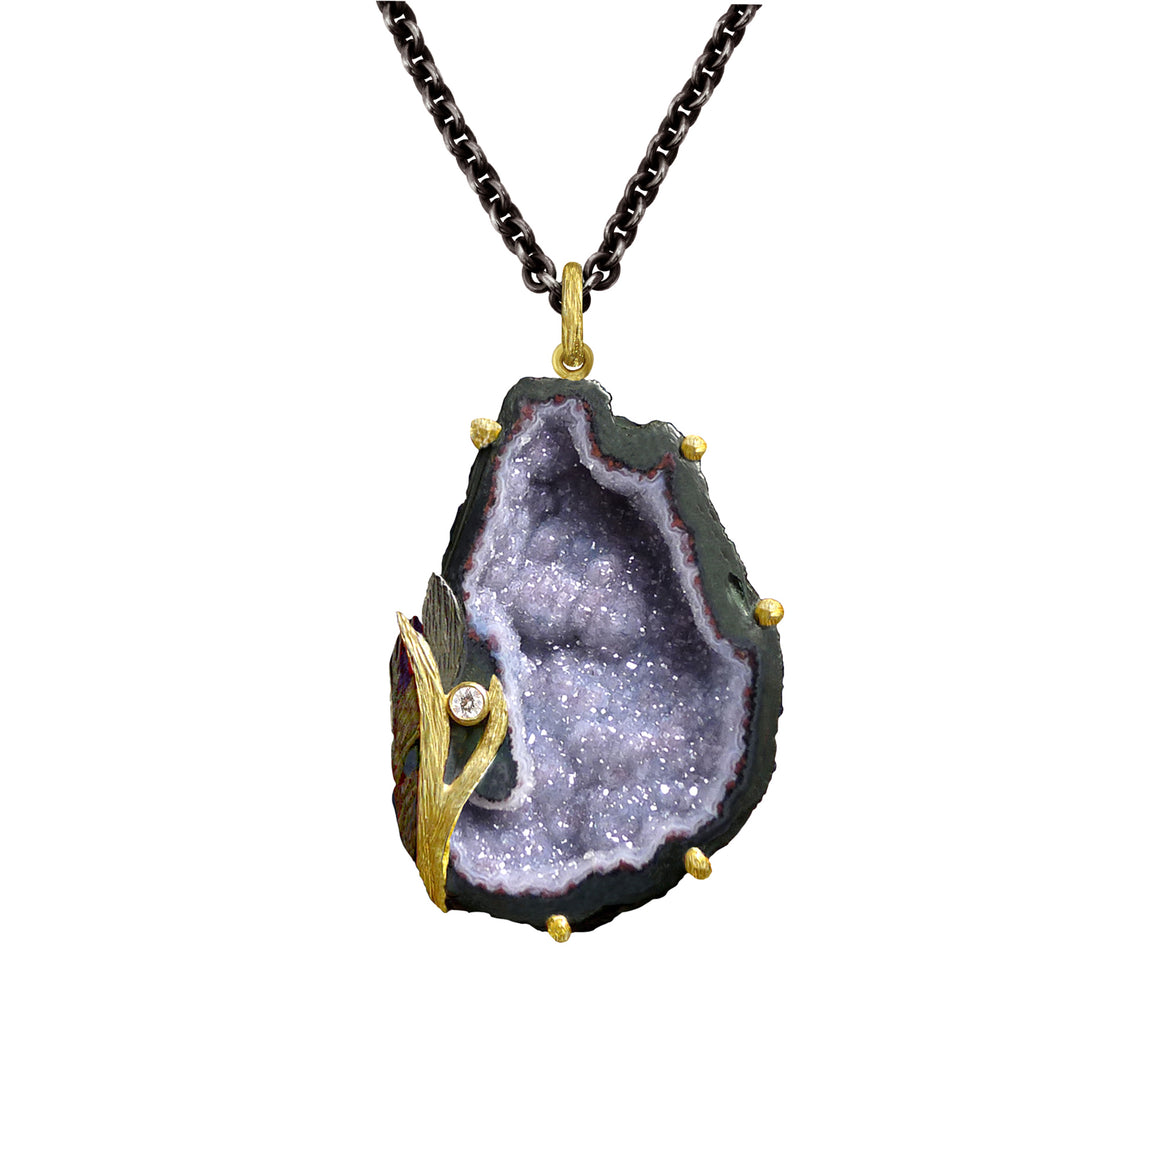 Lavender Geode Lemongrass Necklace by Laurie Kaiser